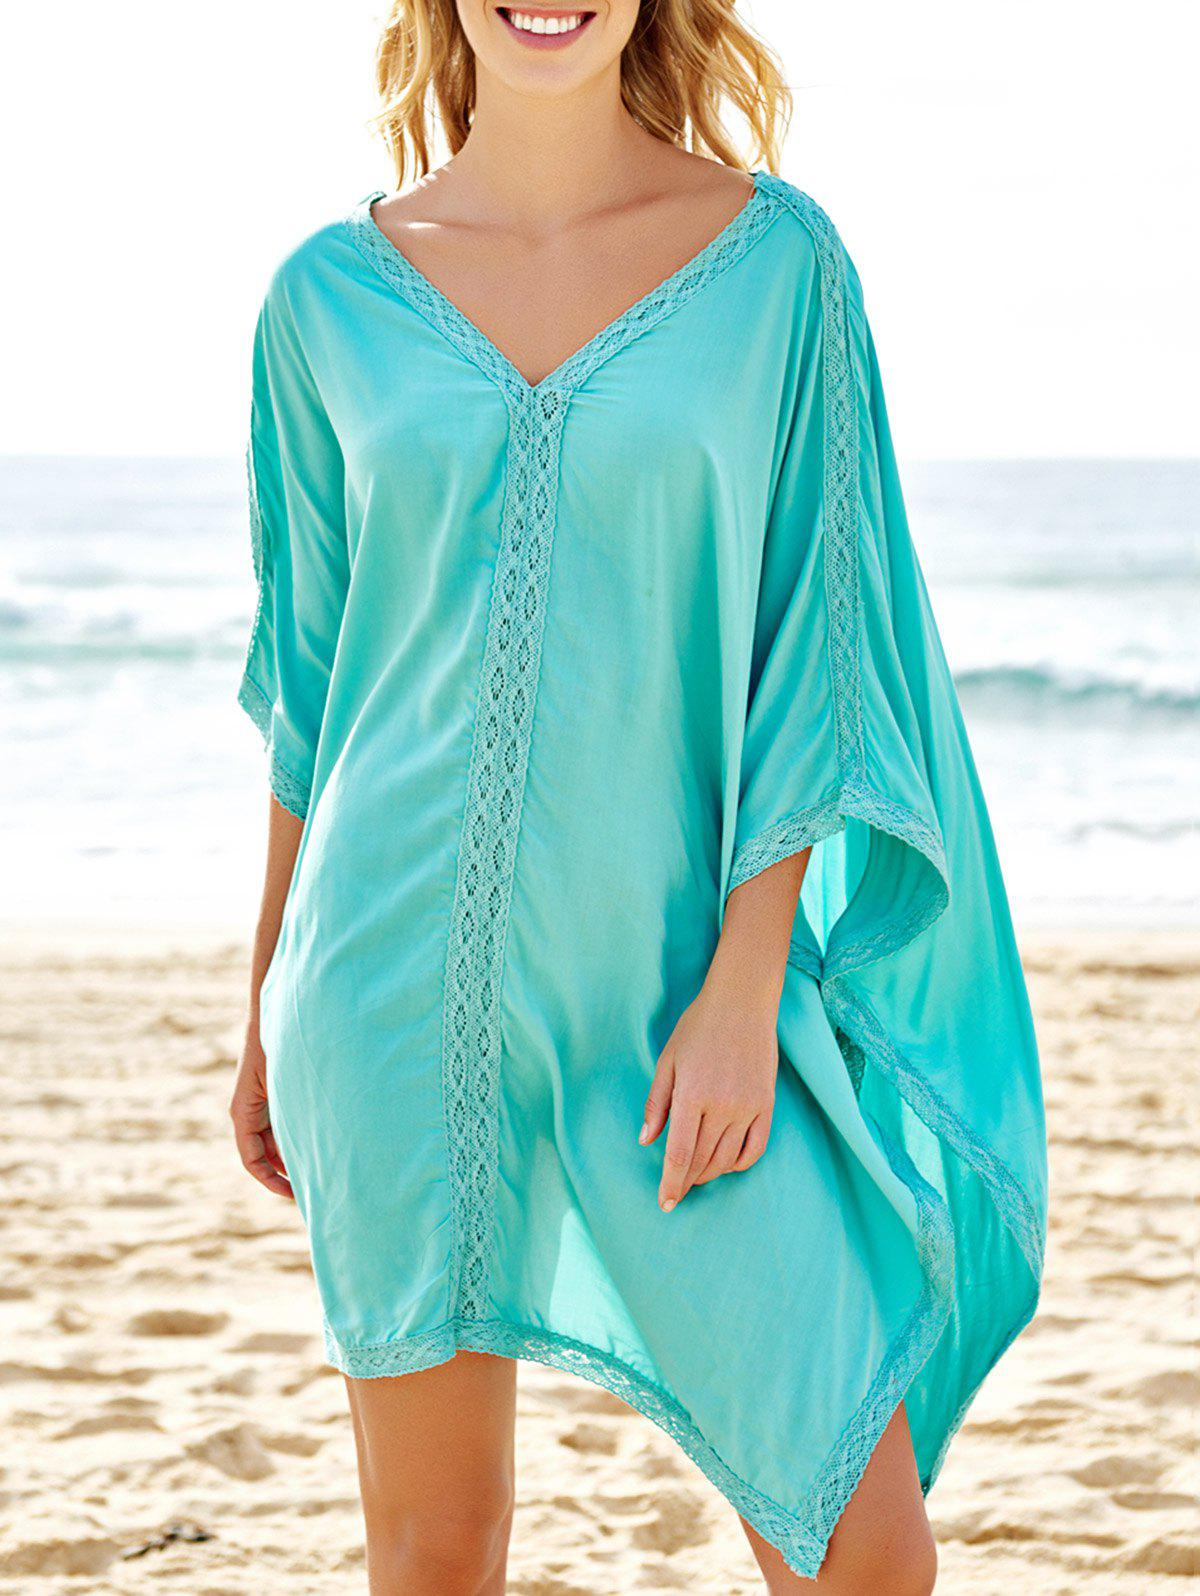 Stylish Plunging Neck Spliced 3/4 Sleeve Women's Cover-Up